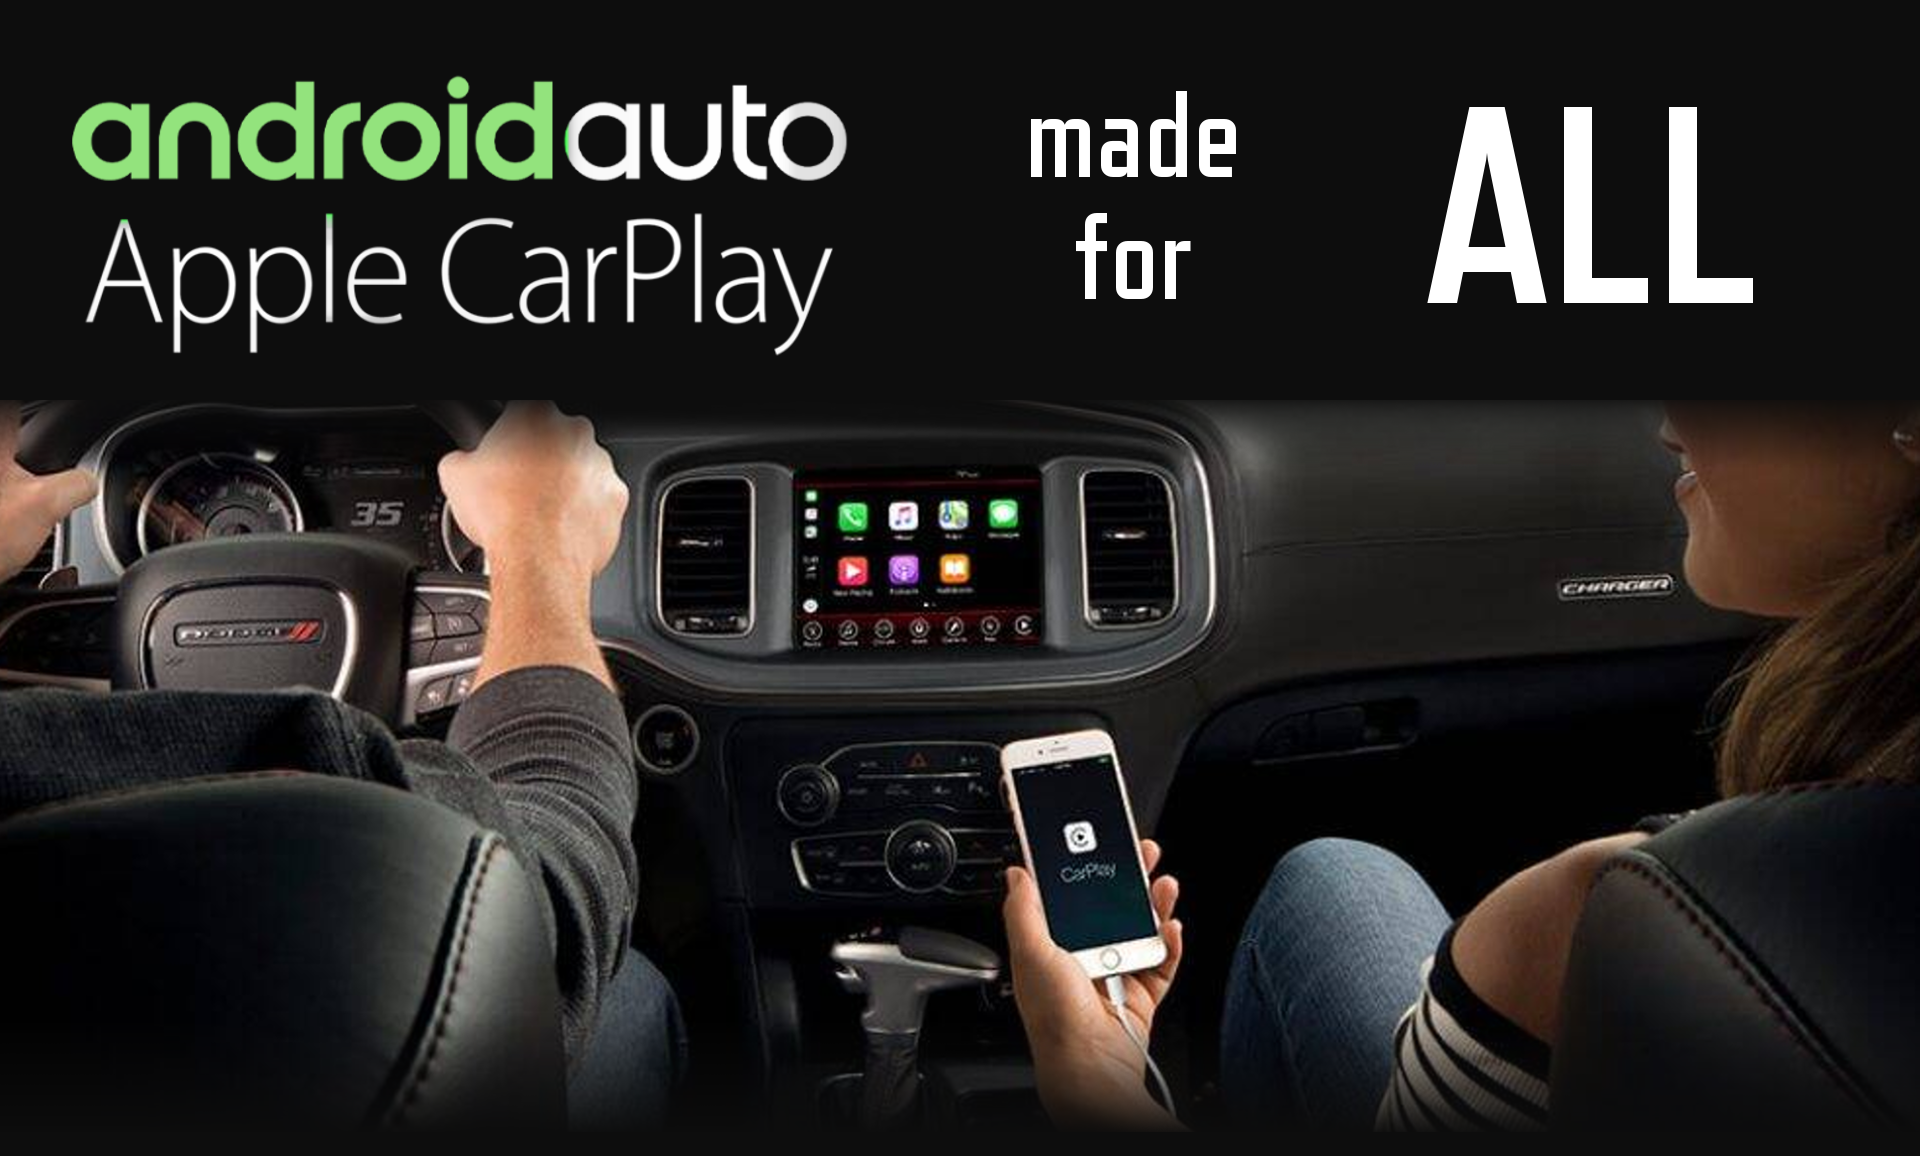 Aftermarket Apple Carplay, Android Auto integration for factory Alfa Romeo - Guilietta, Dodge - Charger, Fiat - Freemont, Hyundai - Veloster, Peugeot - 208 and 308, Renault - Clio and Koleos, Volvo - Various radio screen